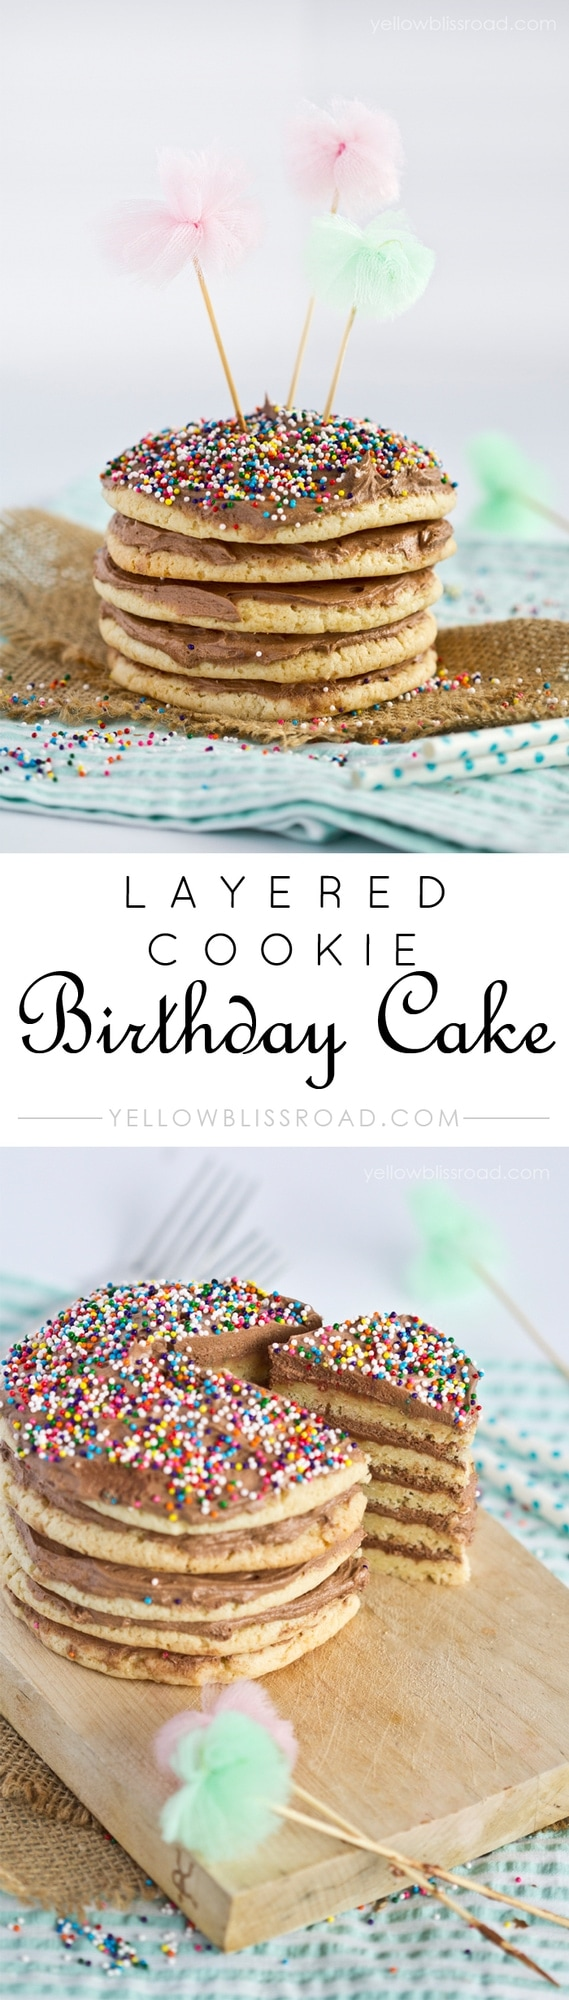 Layered Cookie Birthday Cake - Made with Cake Mix!